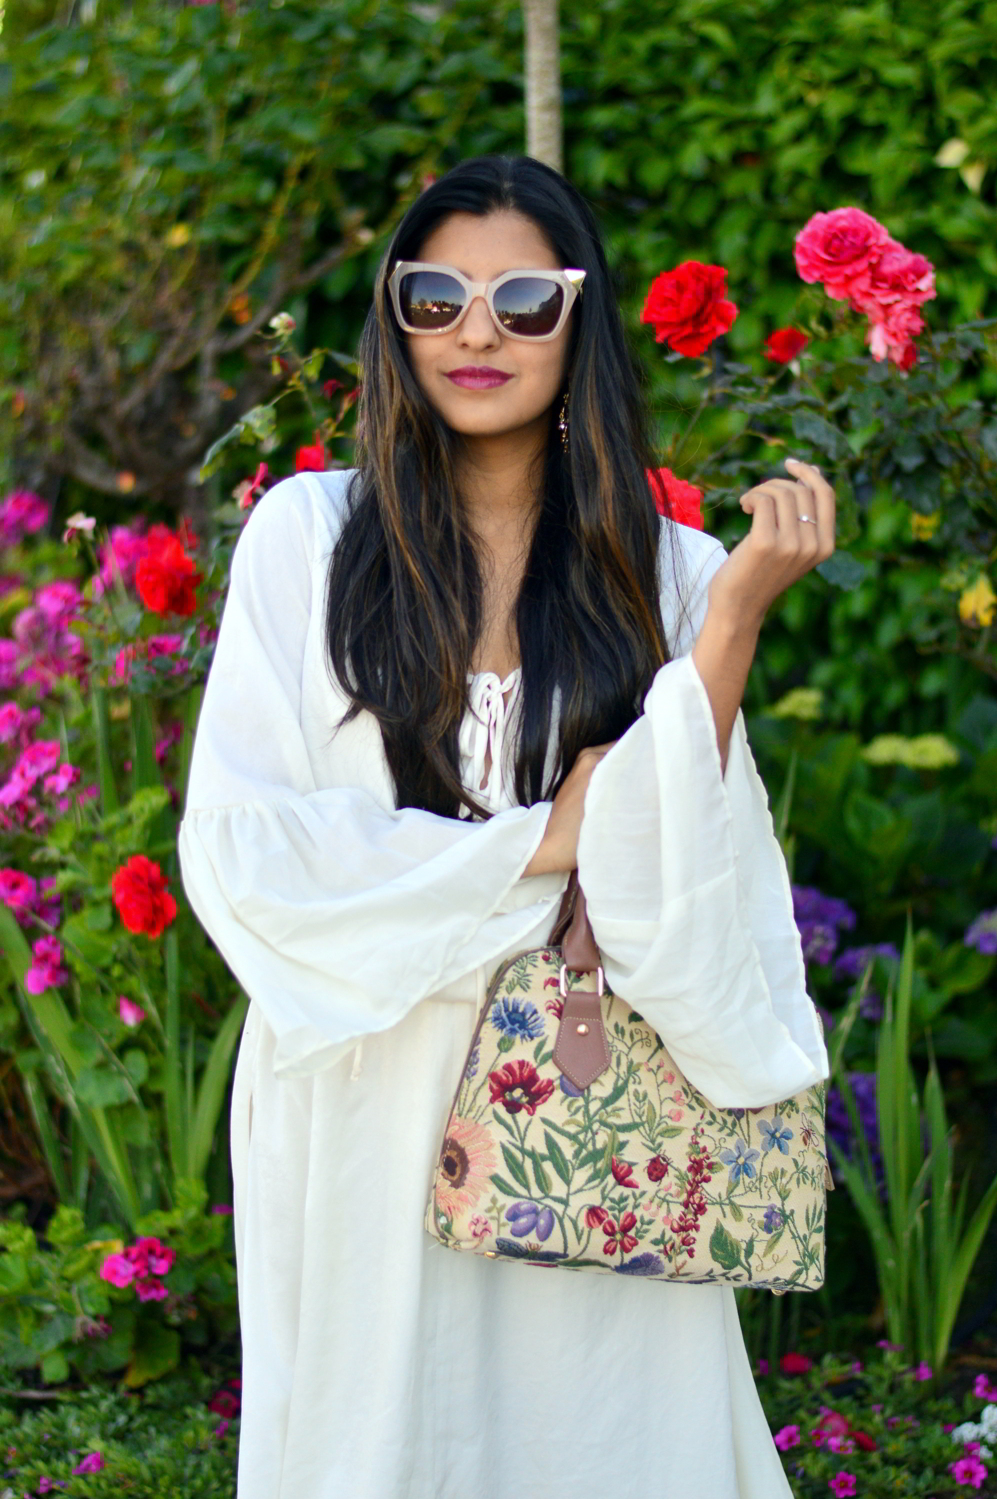 bell-sleeves-white-summer-style-blogger-outfit-dress-floral-bag 8